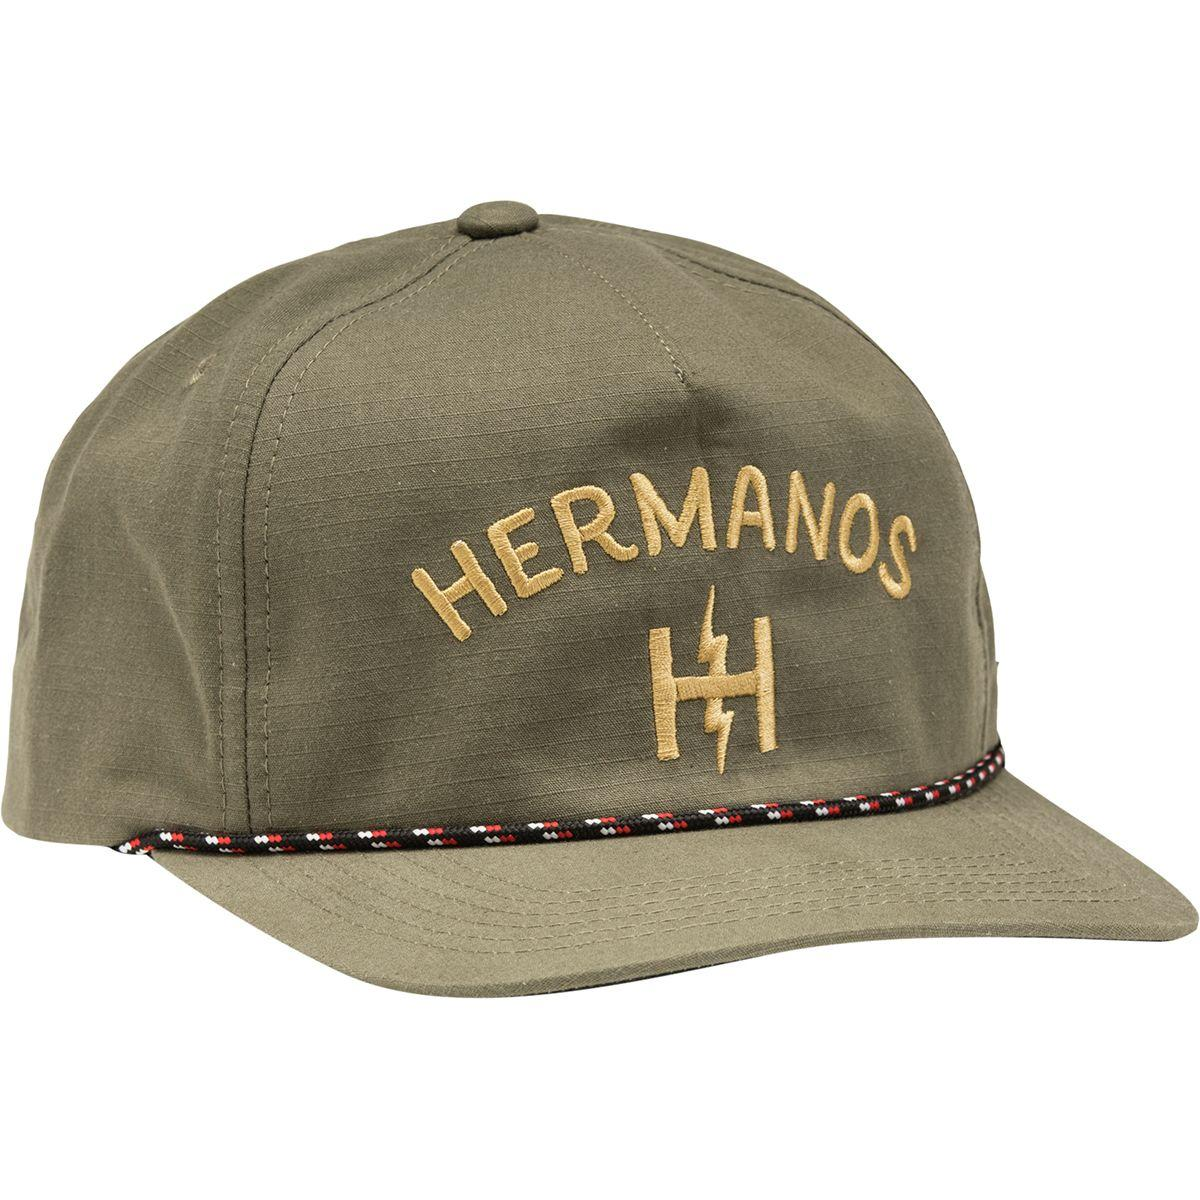 4299f7a2030e61 Lyst - Howler Brothers Hermanos Snapback Hat in Green for Men